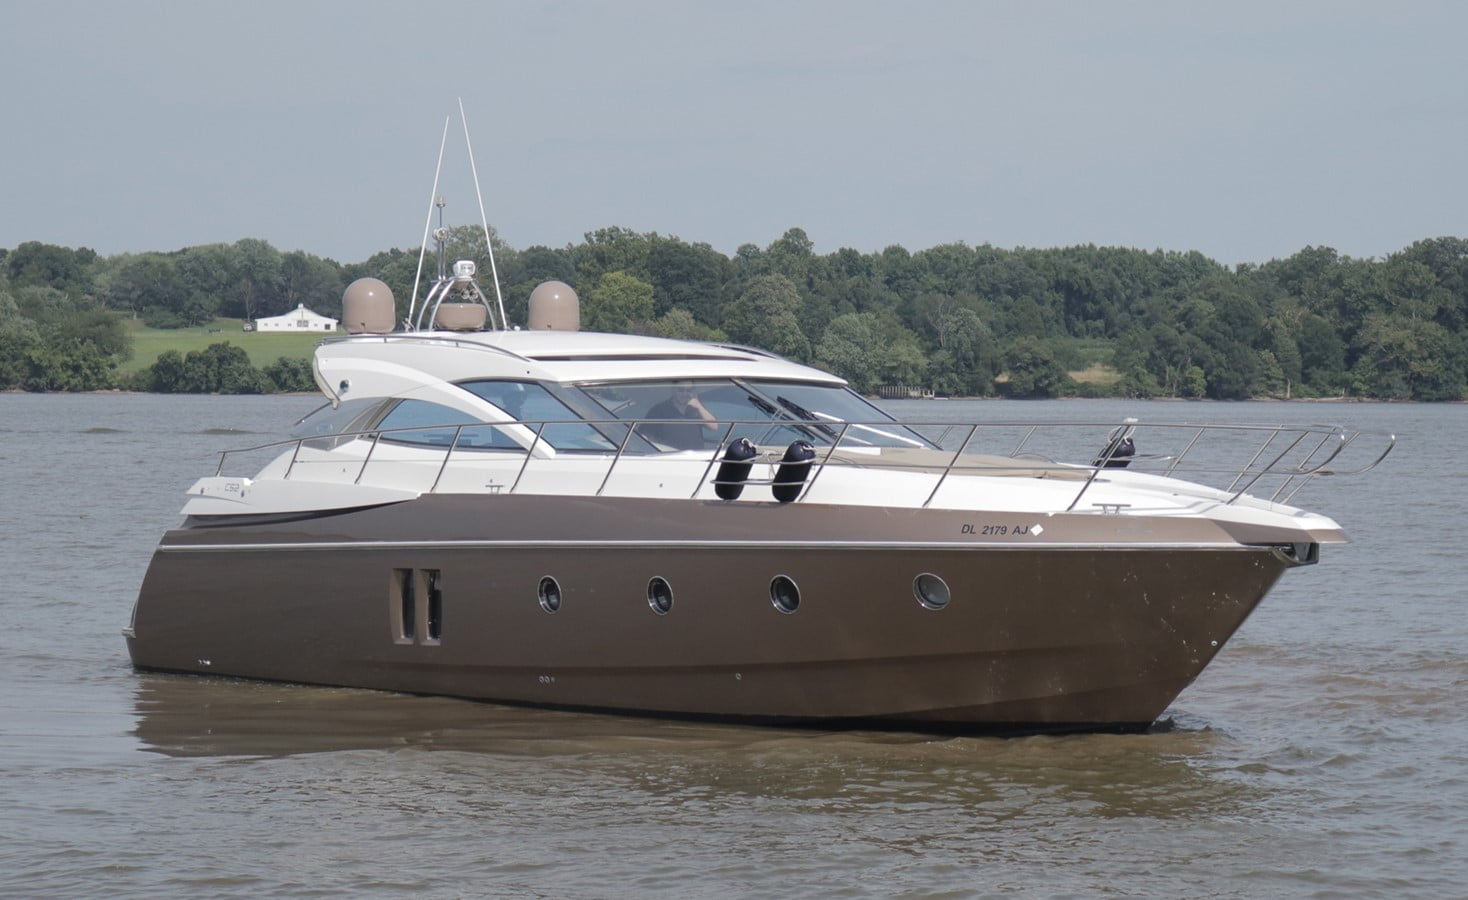 Boat MLS Listings Broken Down By Types of Boats